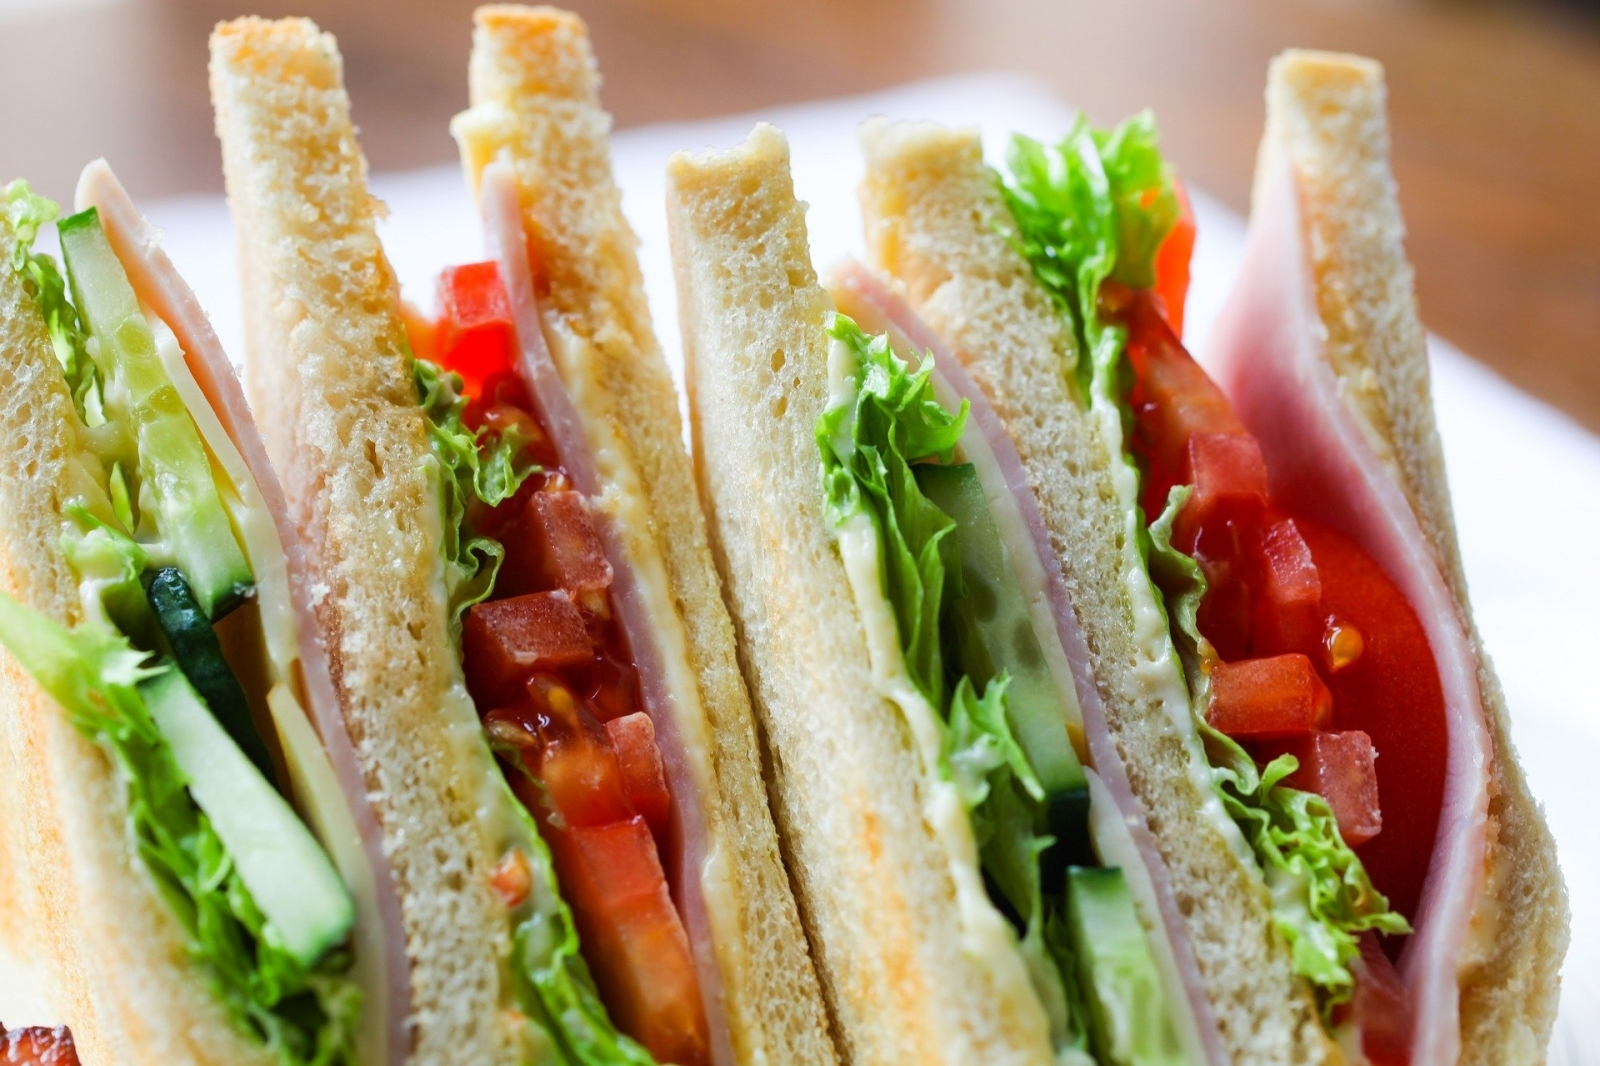 Sandwiches do same environmental damage 'as millions of cars'